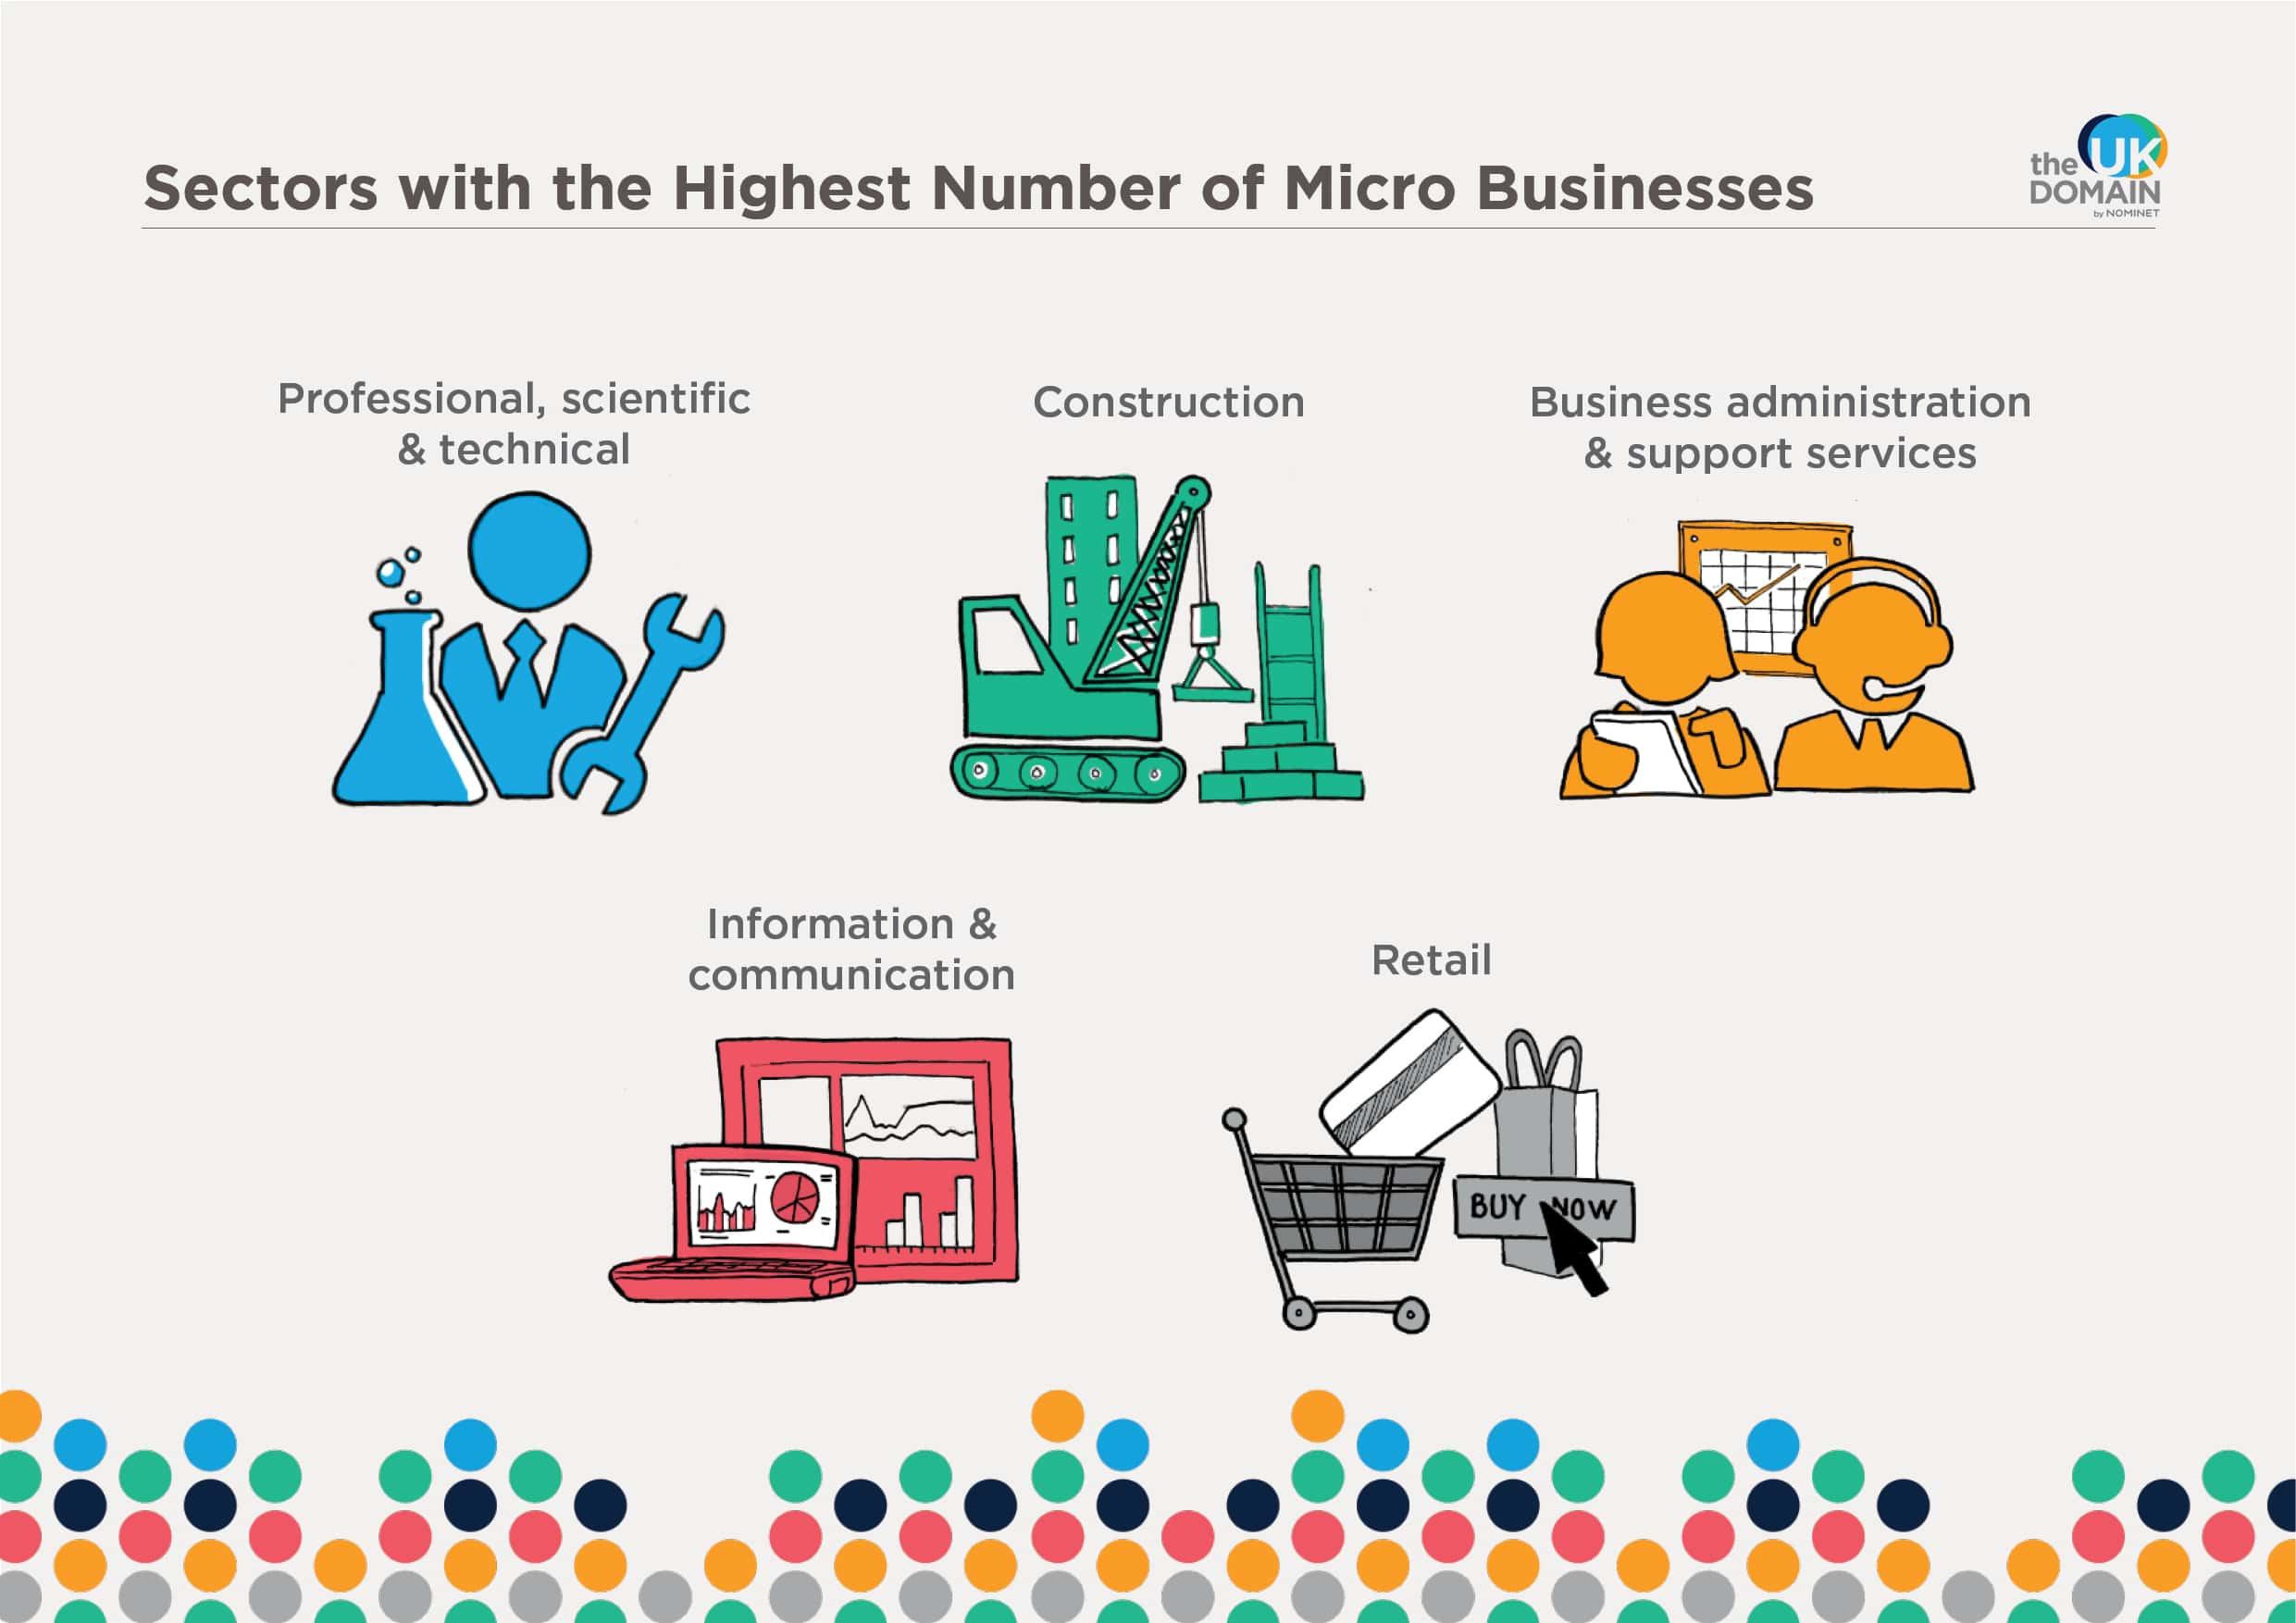 Sectors with the highest number if micro businesses